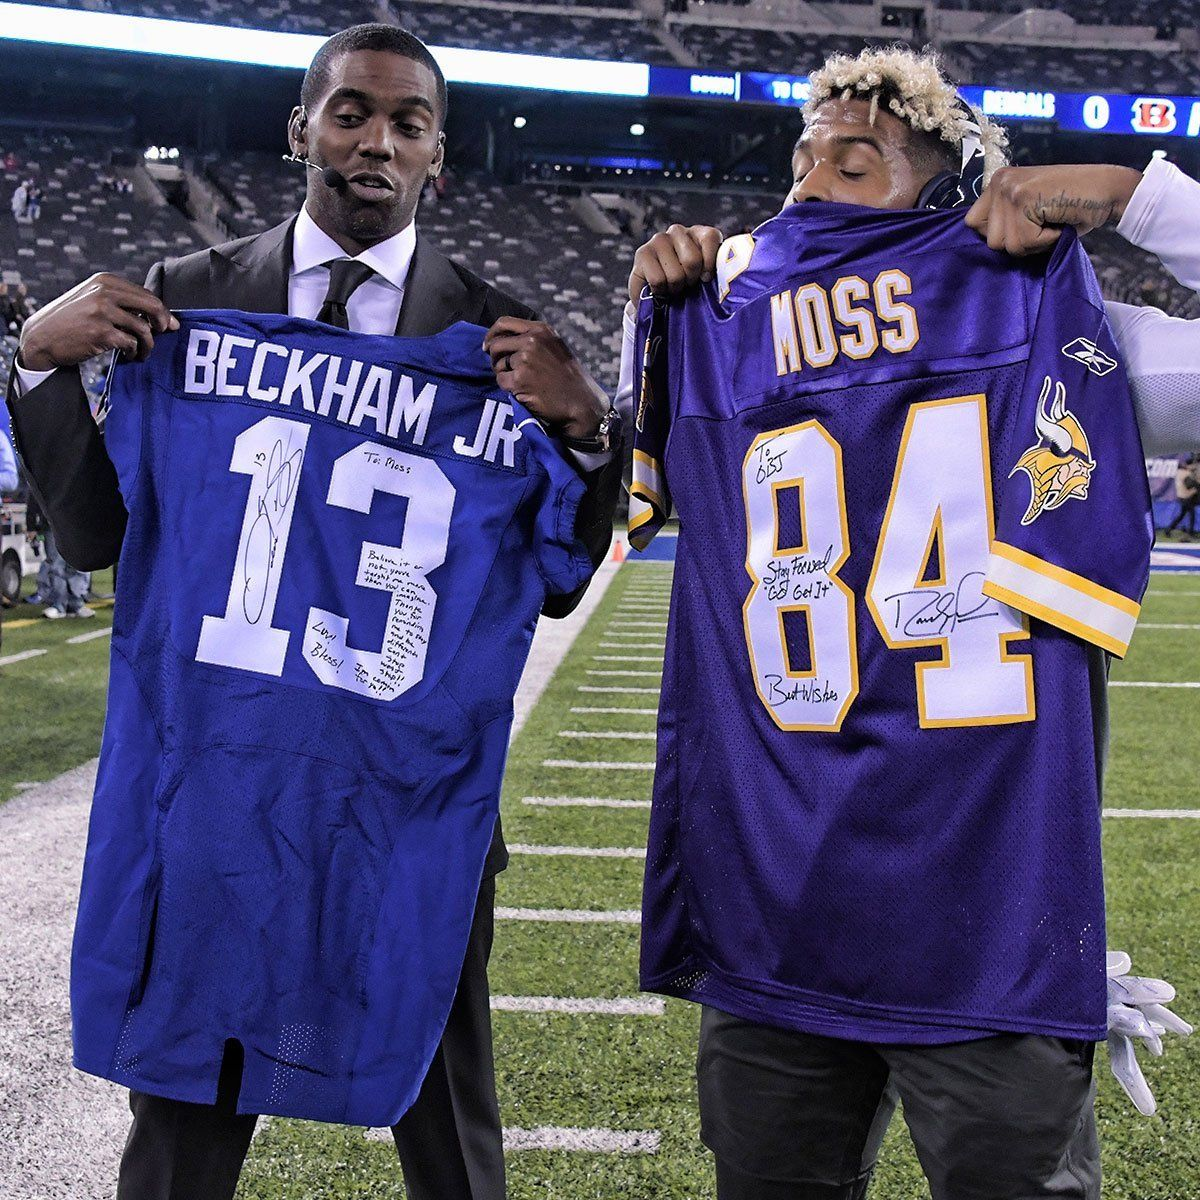 Randy Moss and Odell Beckham Exchange Signed Jerseys